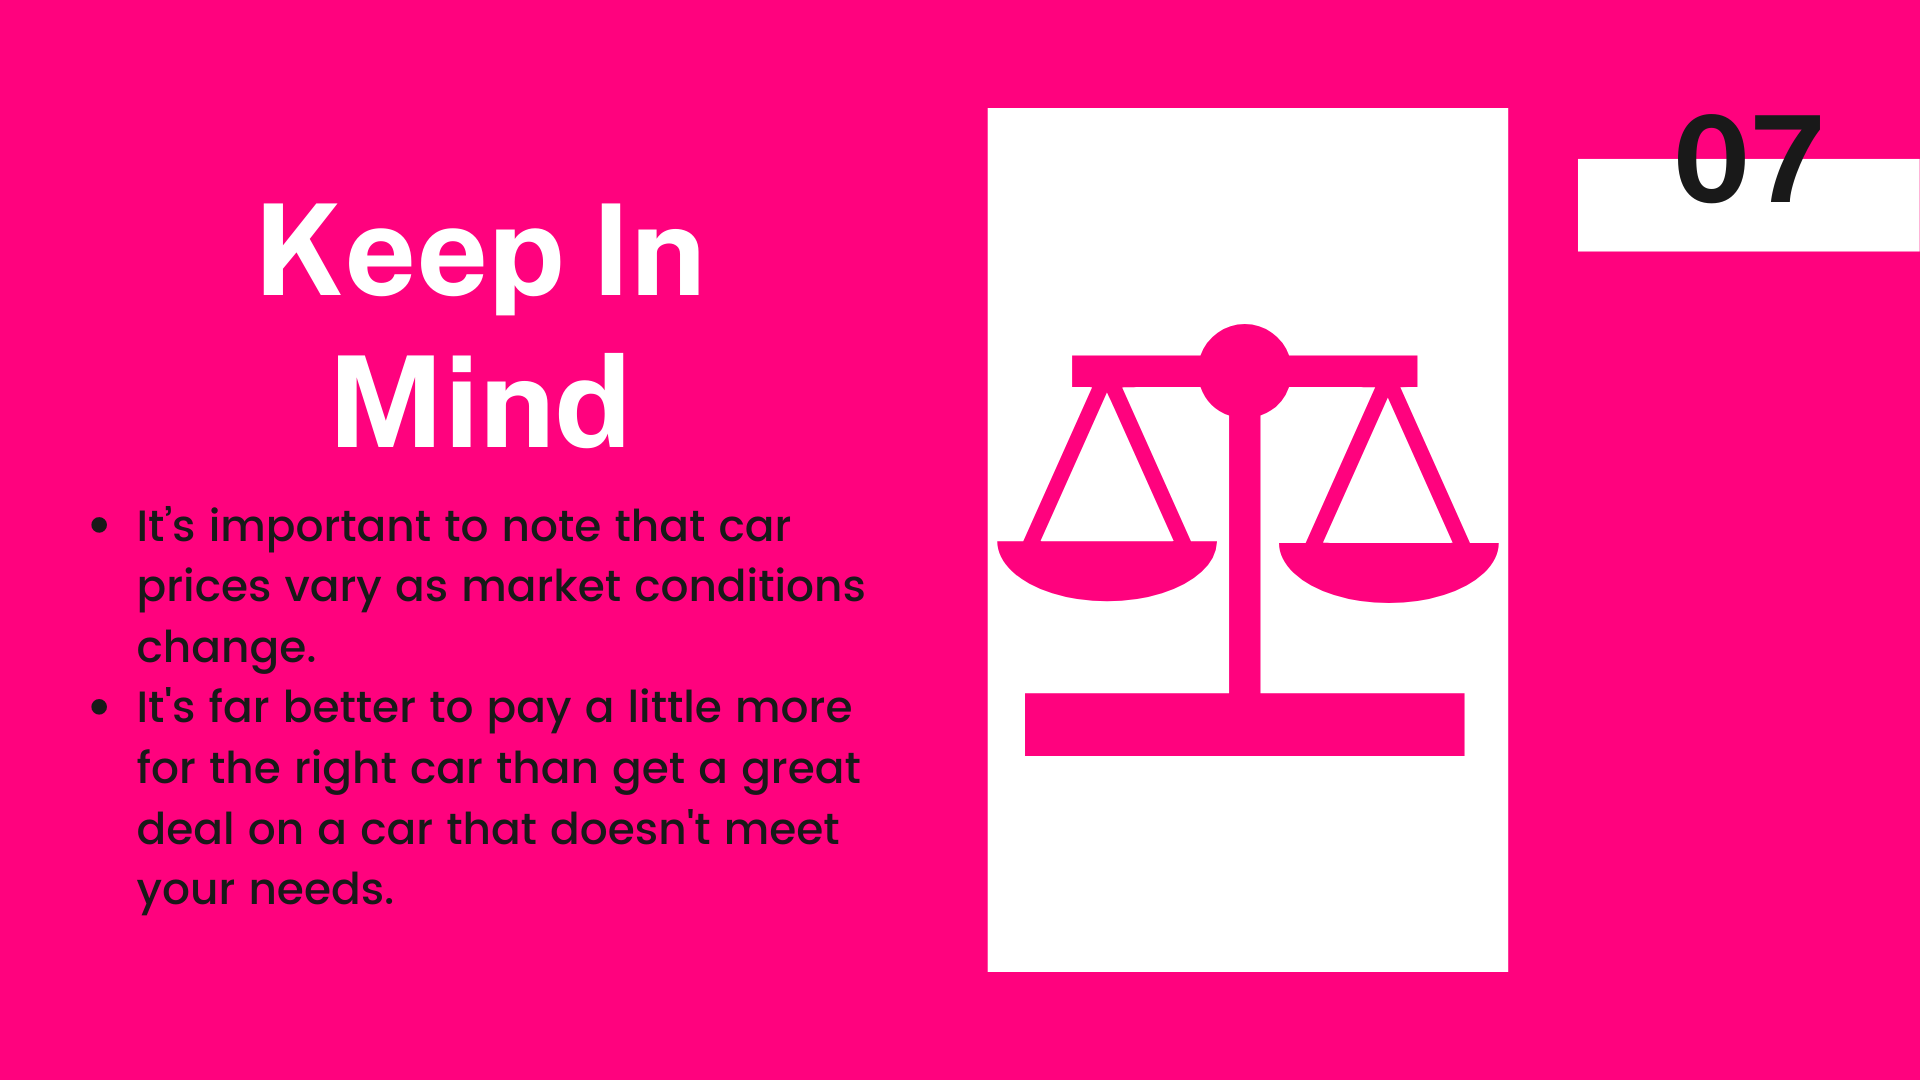 It's important to note that car prices vary as market conditions change. It's far better to pay a little more for the right car than get a great deal on a car that doesn't meet your needs.